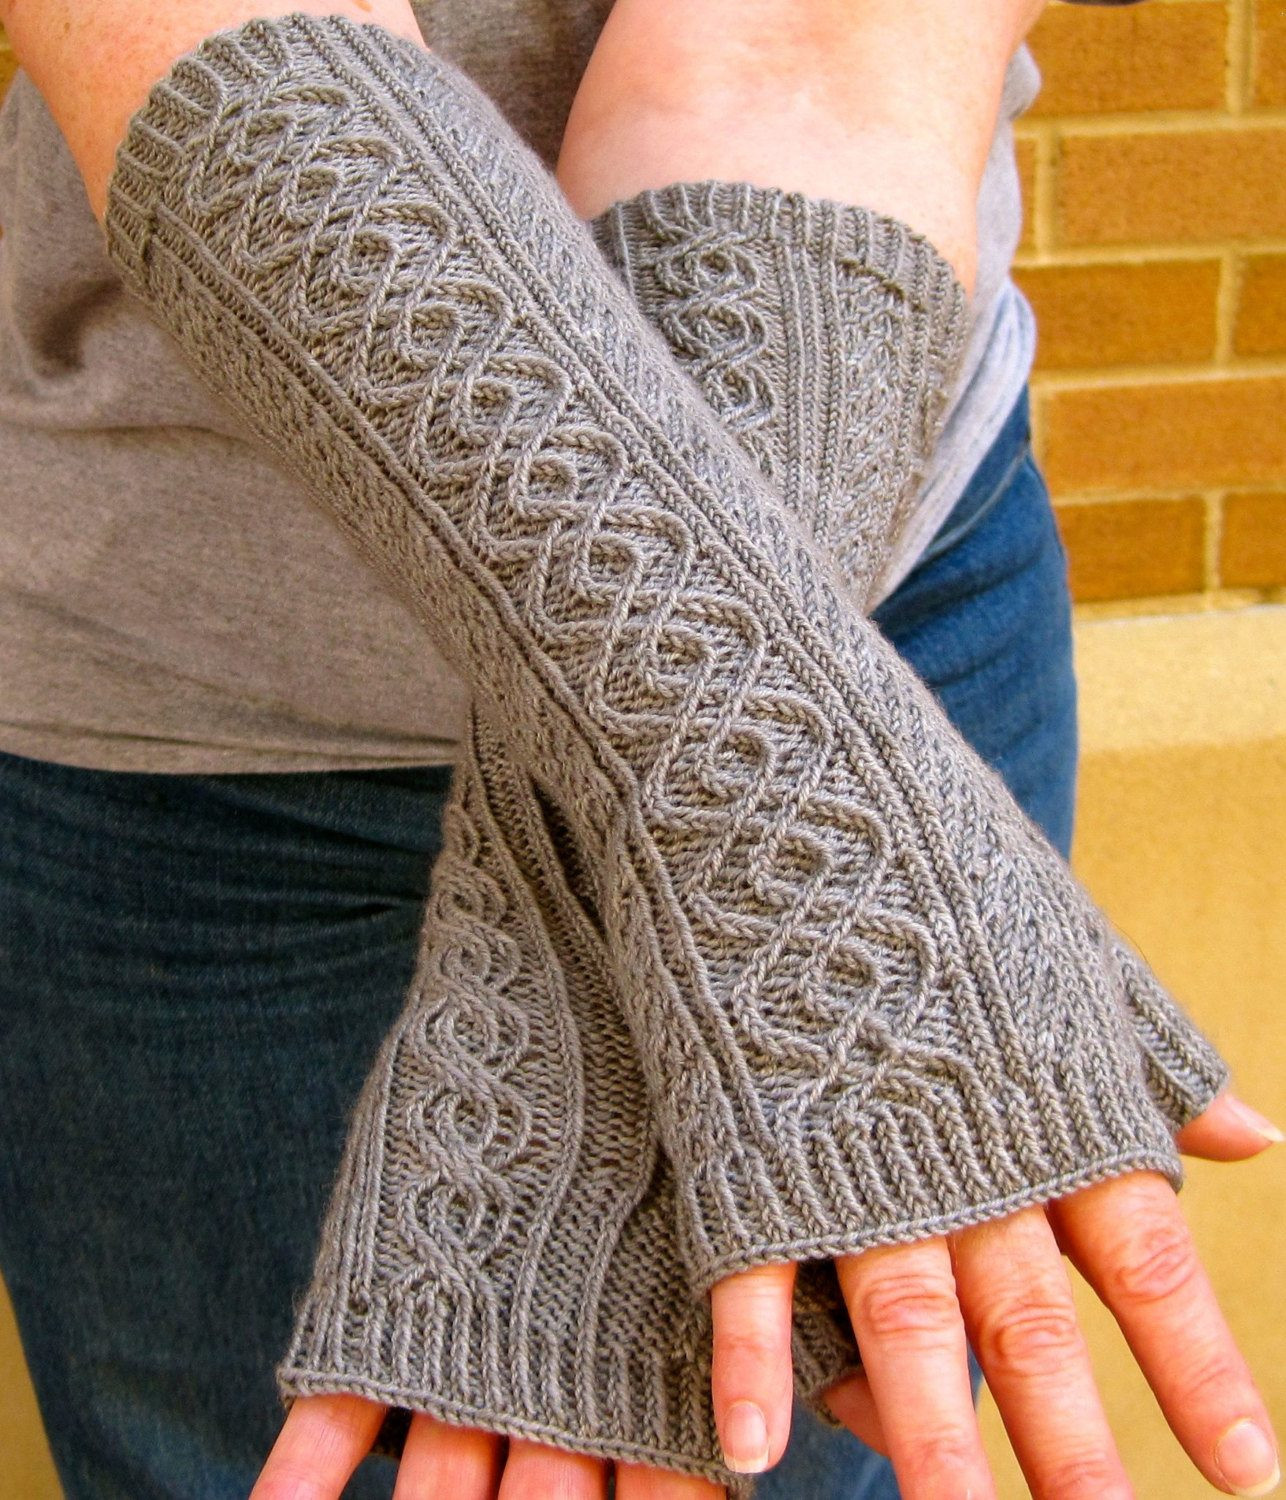 Lovely Twisty Mitts Knitting Patterns Fingerless Mittens Knitting Pattern Of Awesome 41 Pictures Fingerless Mittens Knitting Pattern